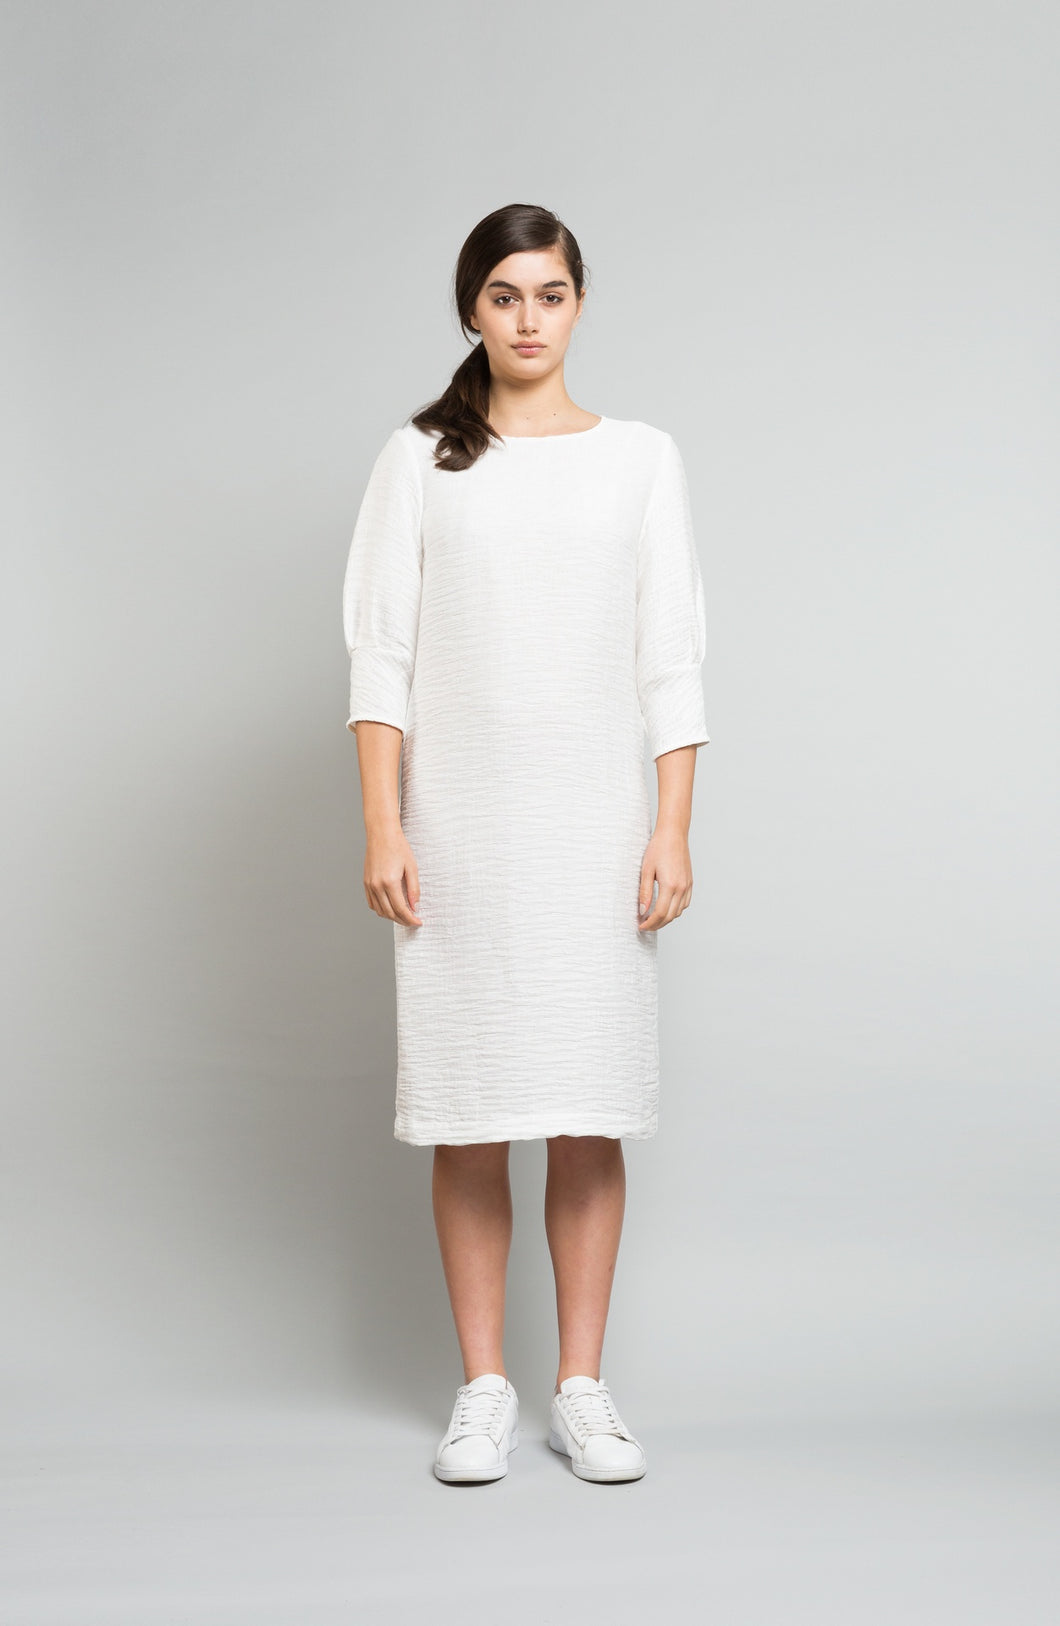 Ebony day dress, rayon, ivory